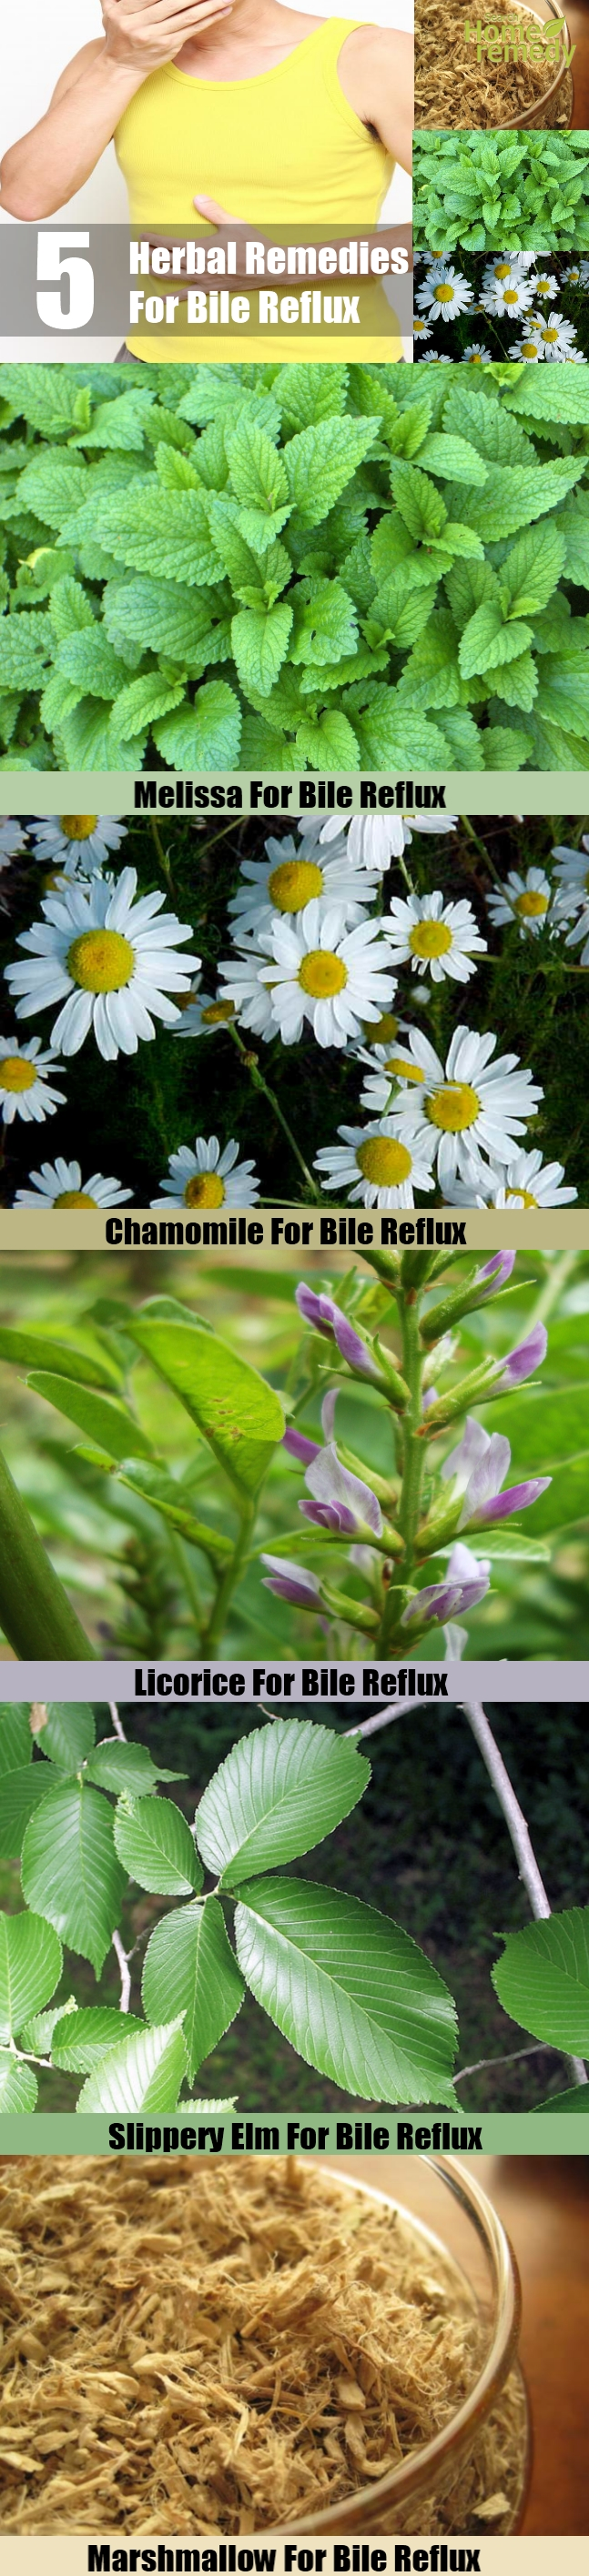 5 Herbal Remedies For Bile Reflux